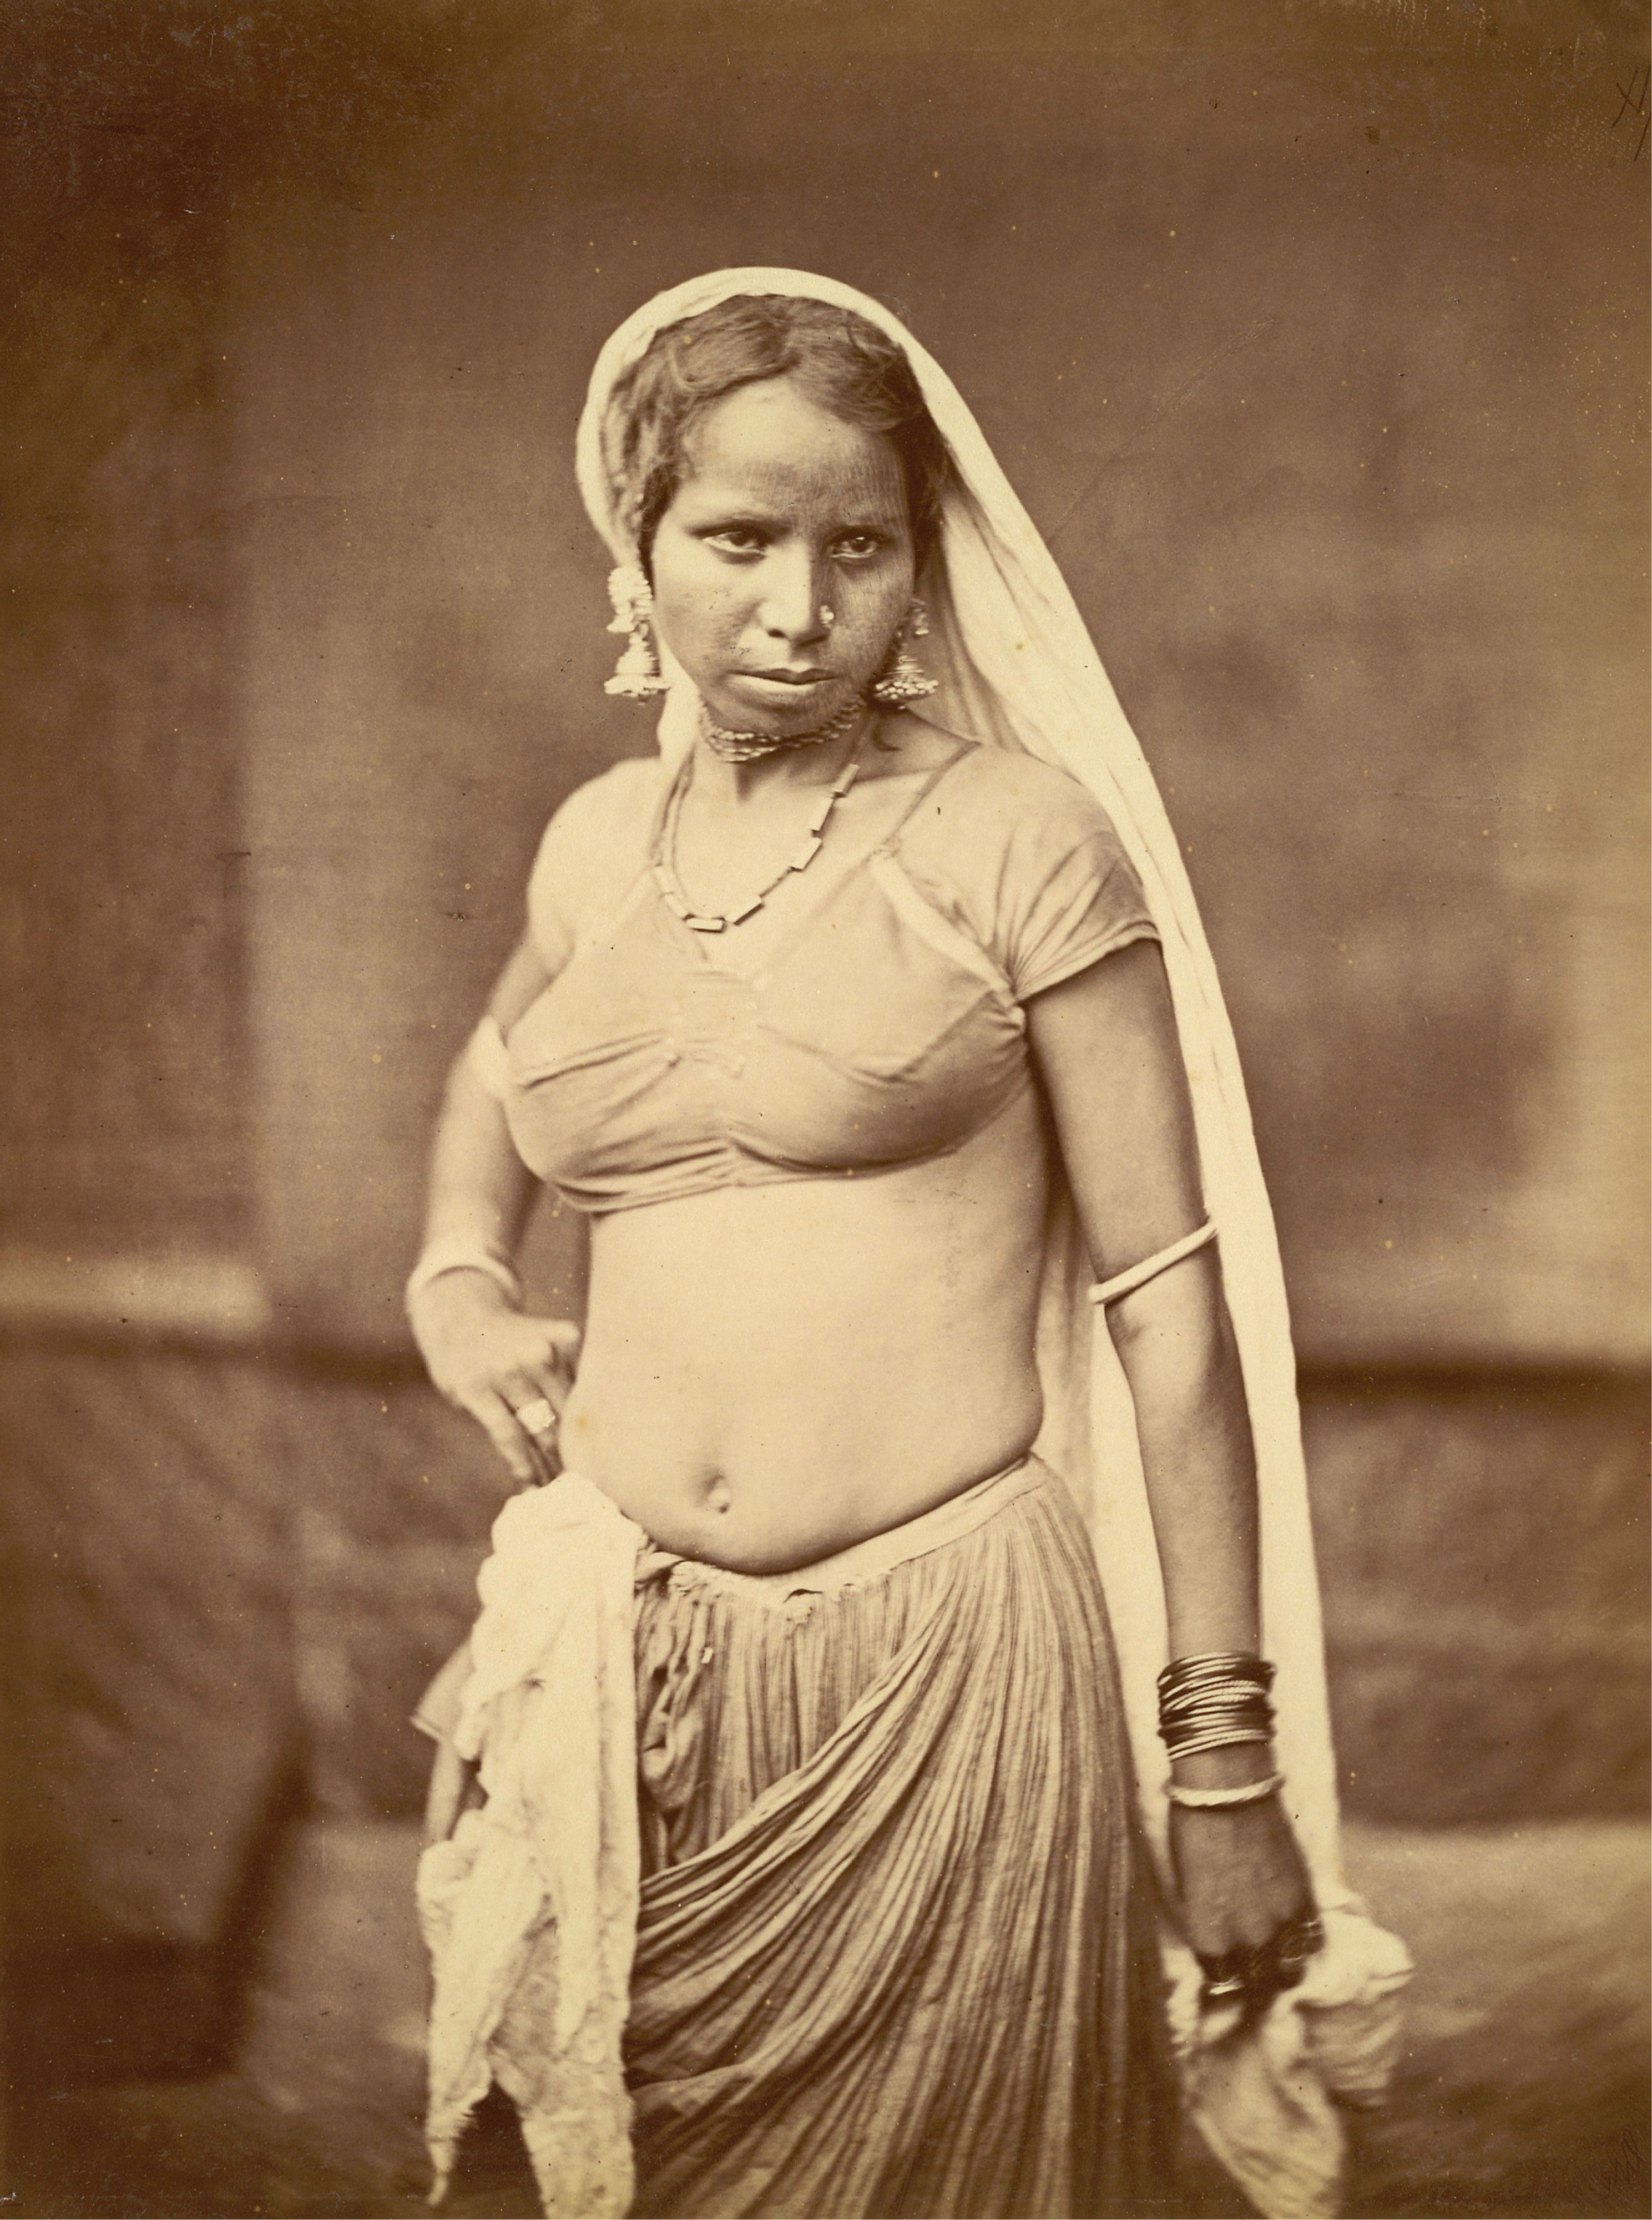 historical rare vintage old photographs and videos of indian sub